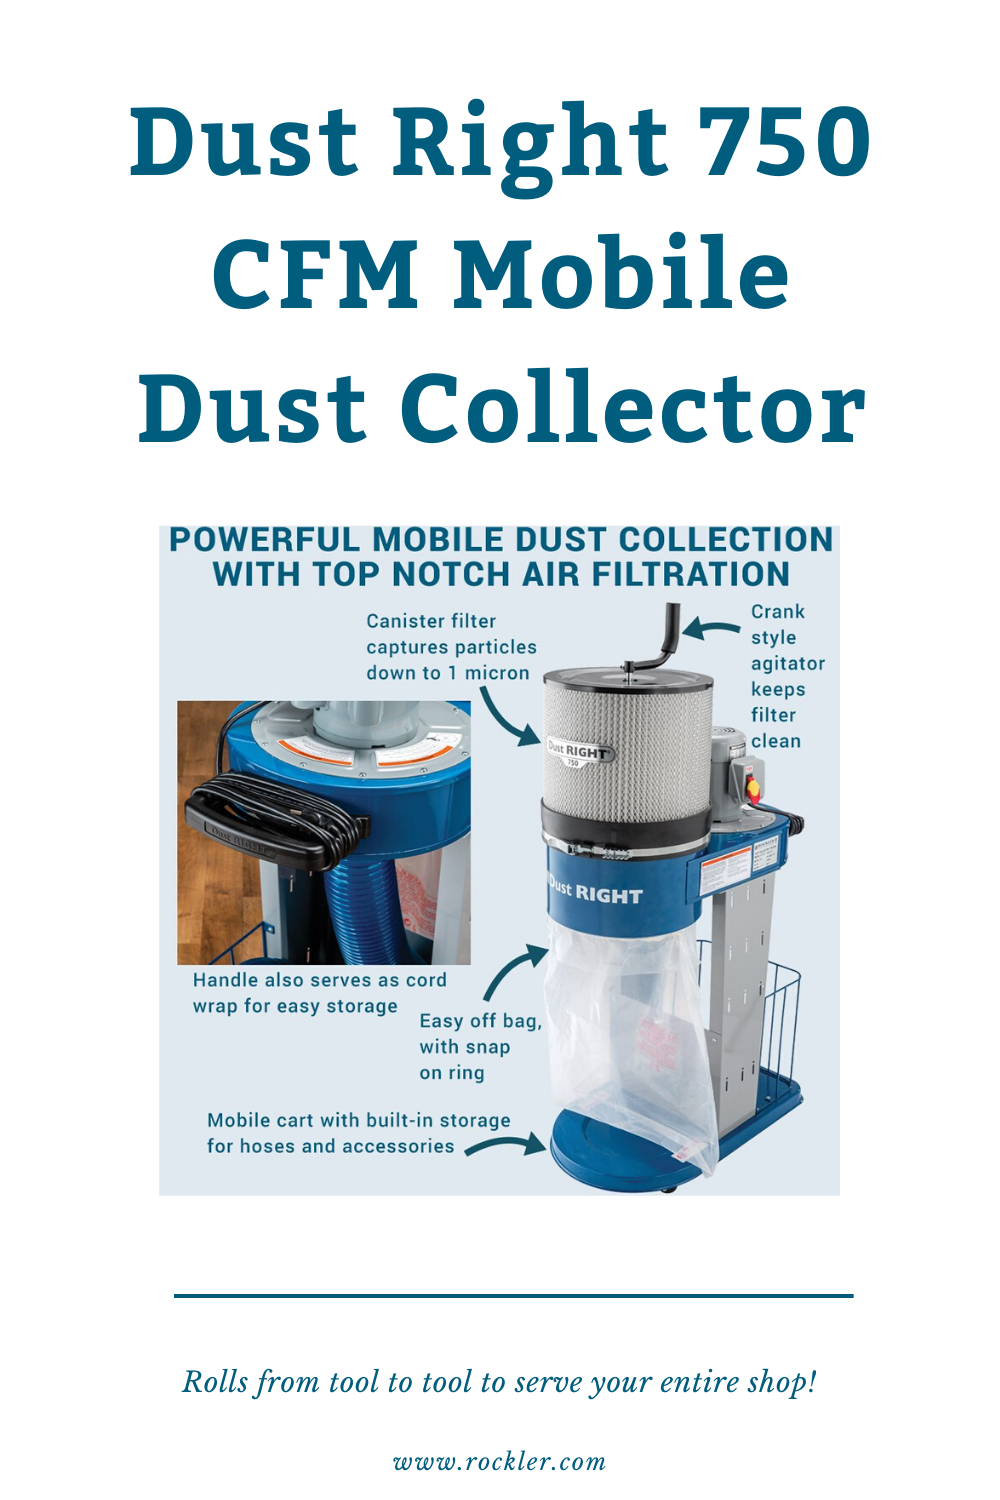 Dust Right 750 CFM Mobile Dust Collector in 2020 Dust